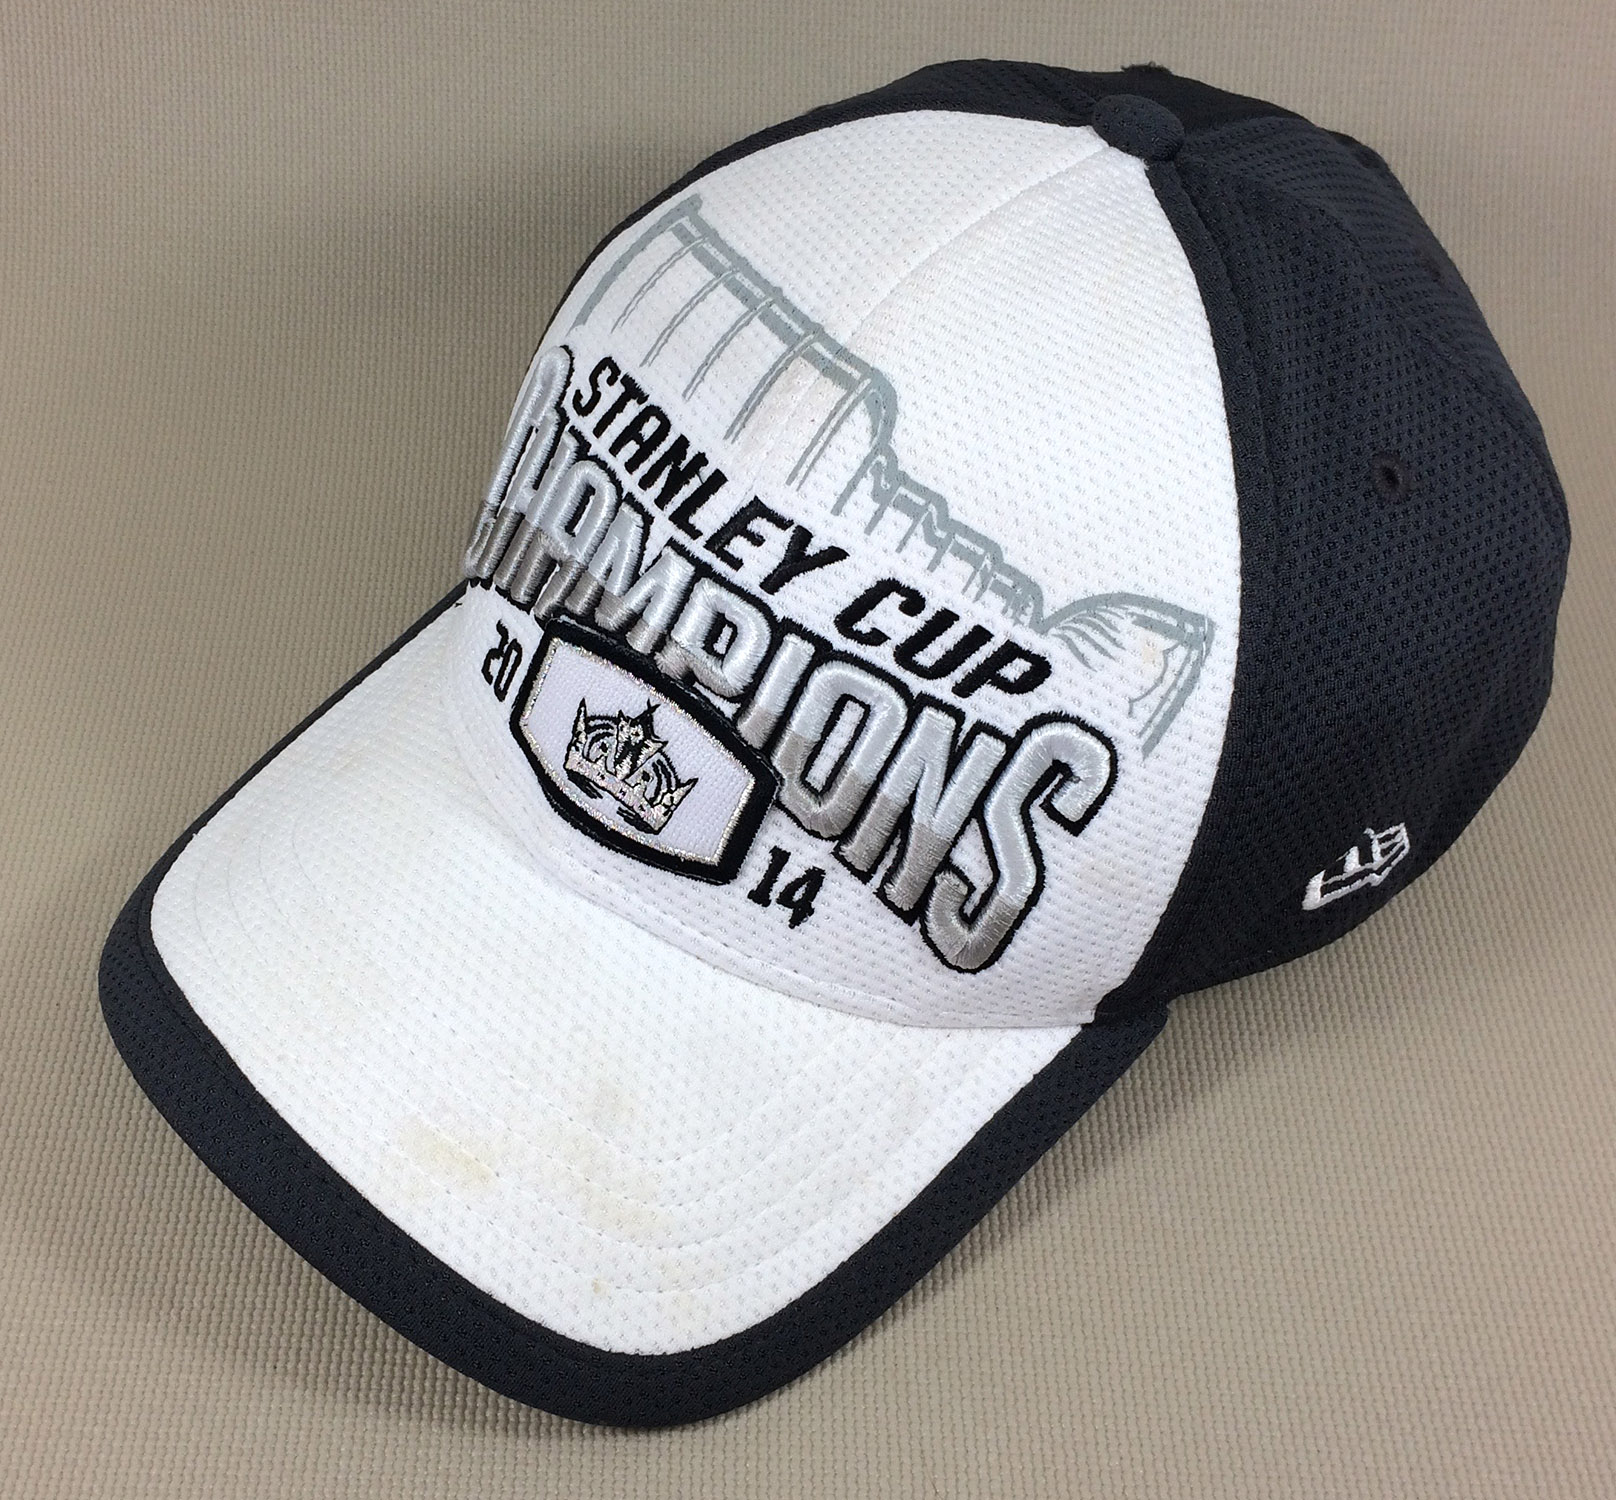 Los Angeles Kings 2014 Stanley Cup Commemorative Cap